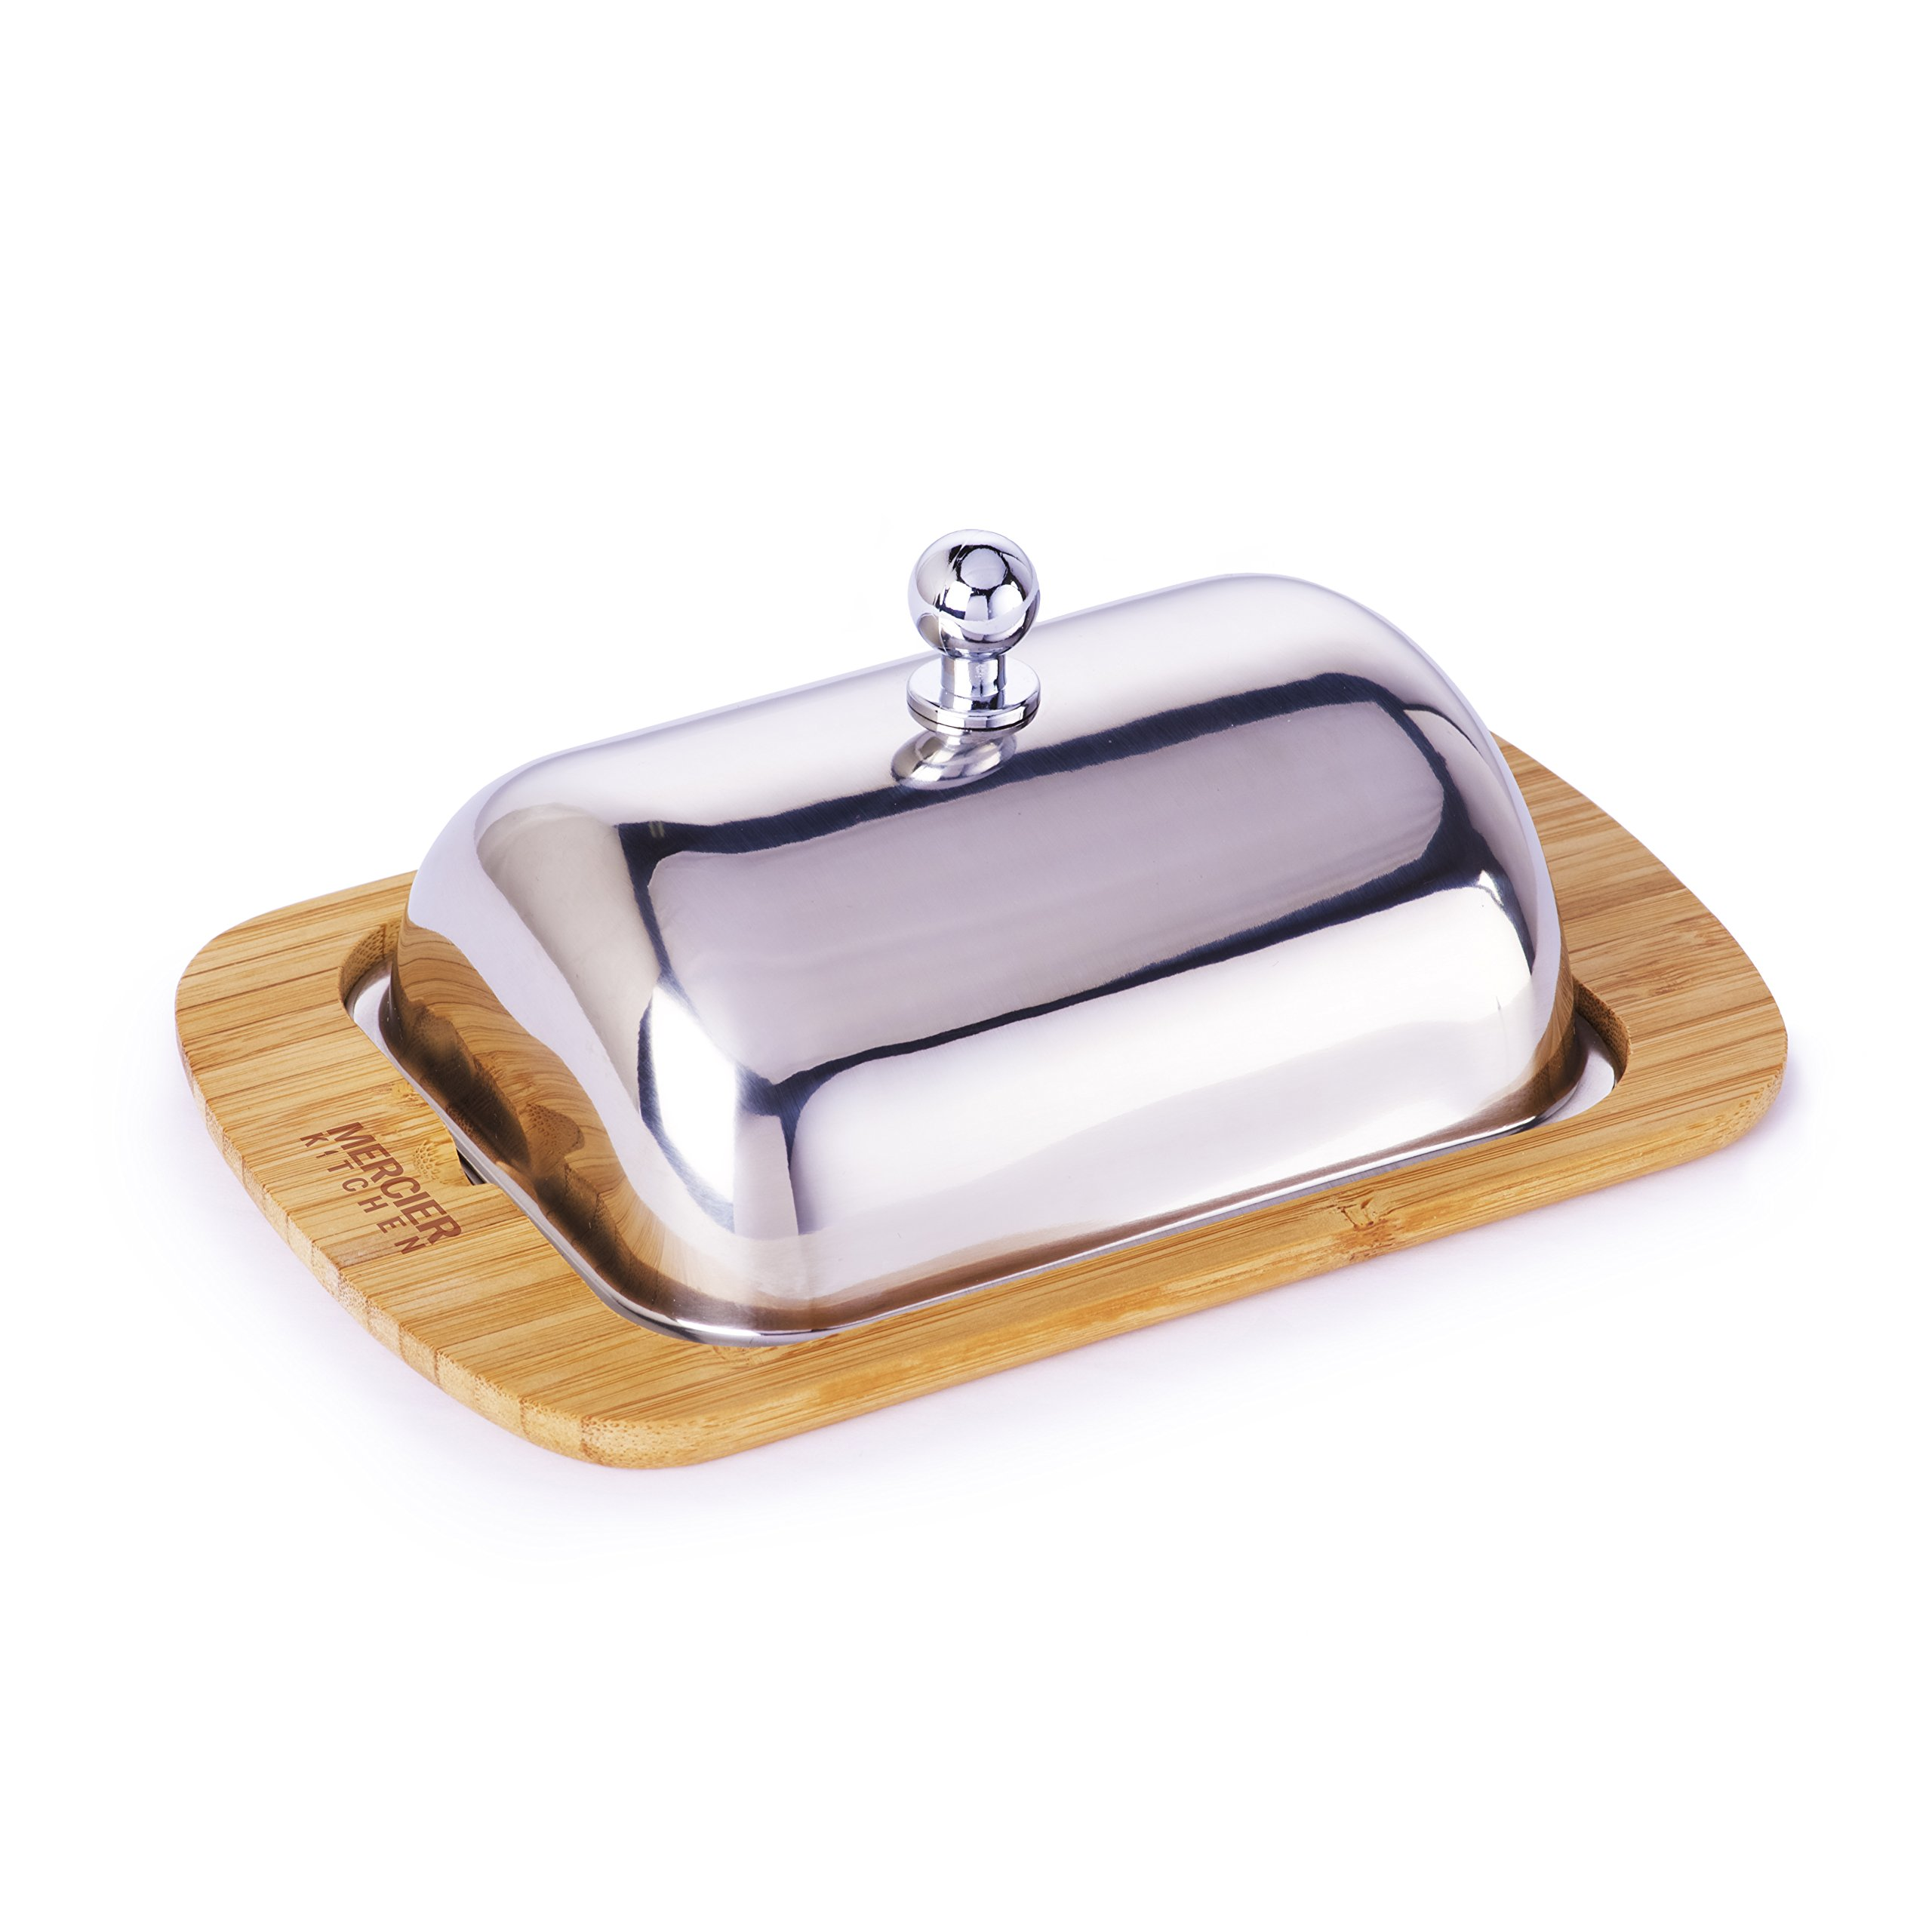 Mercier Kitchen MERCIER Bamboo + Stainless Steel Butter Dish with Stainless Steel Lid